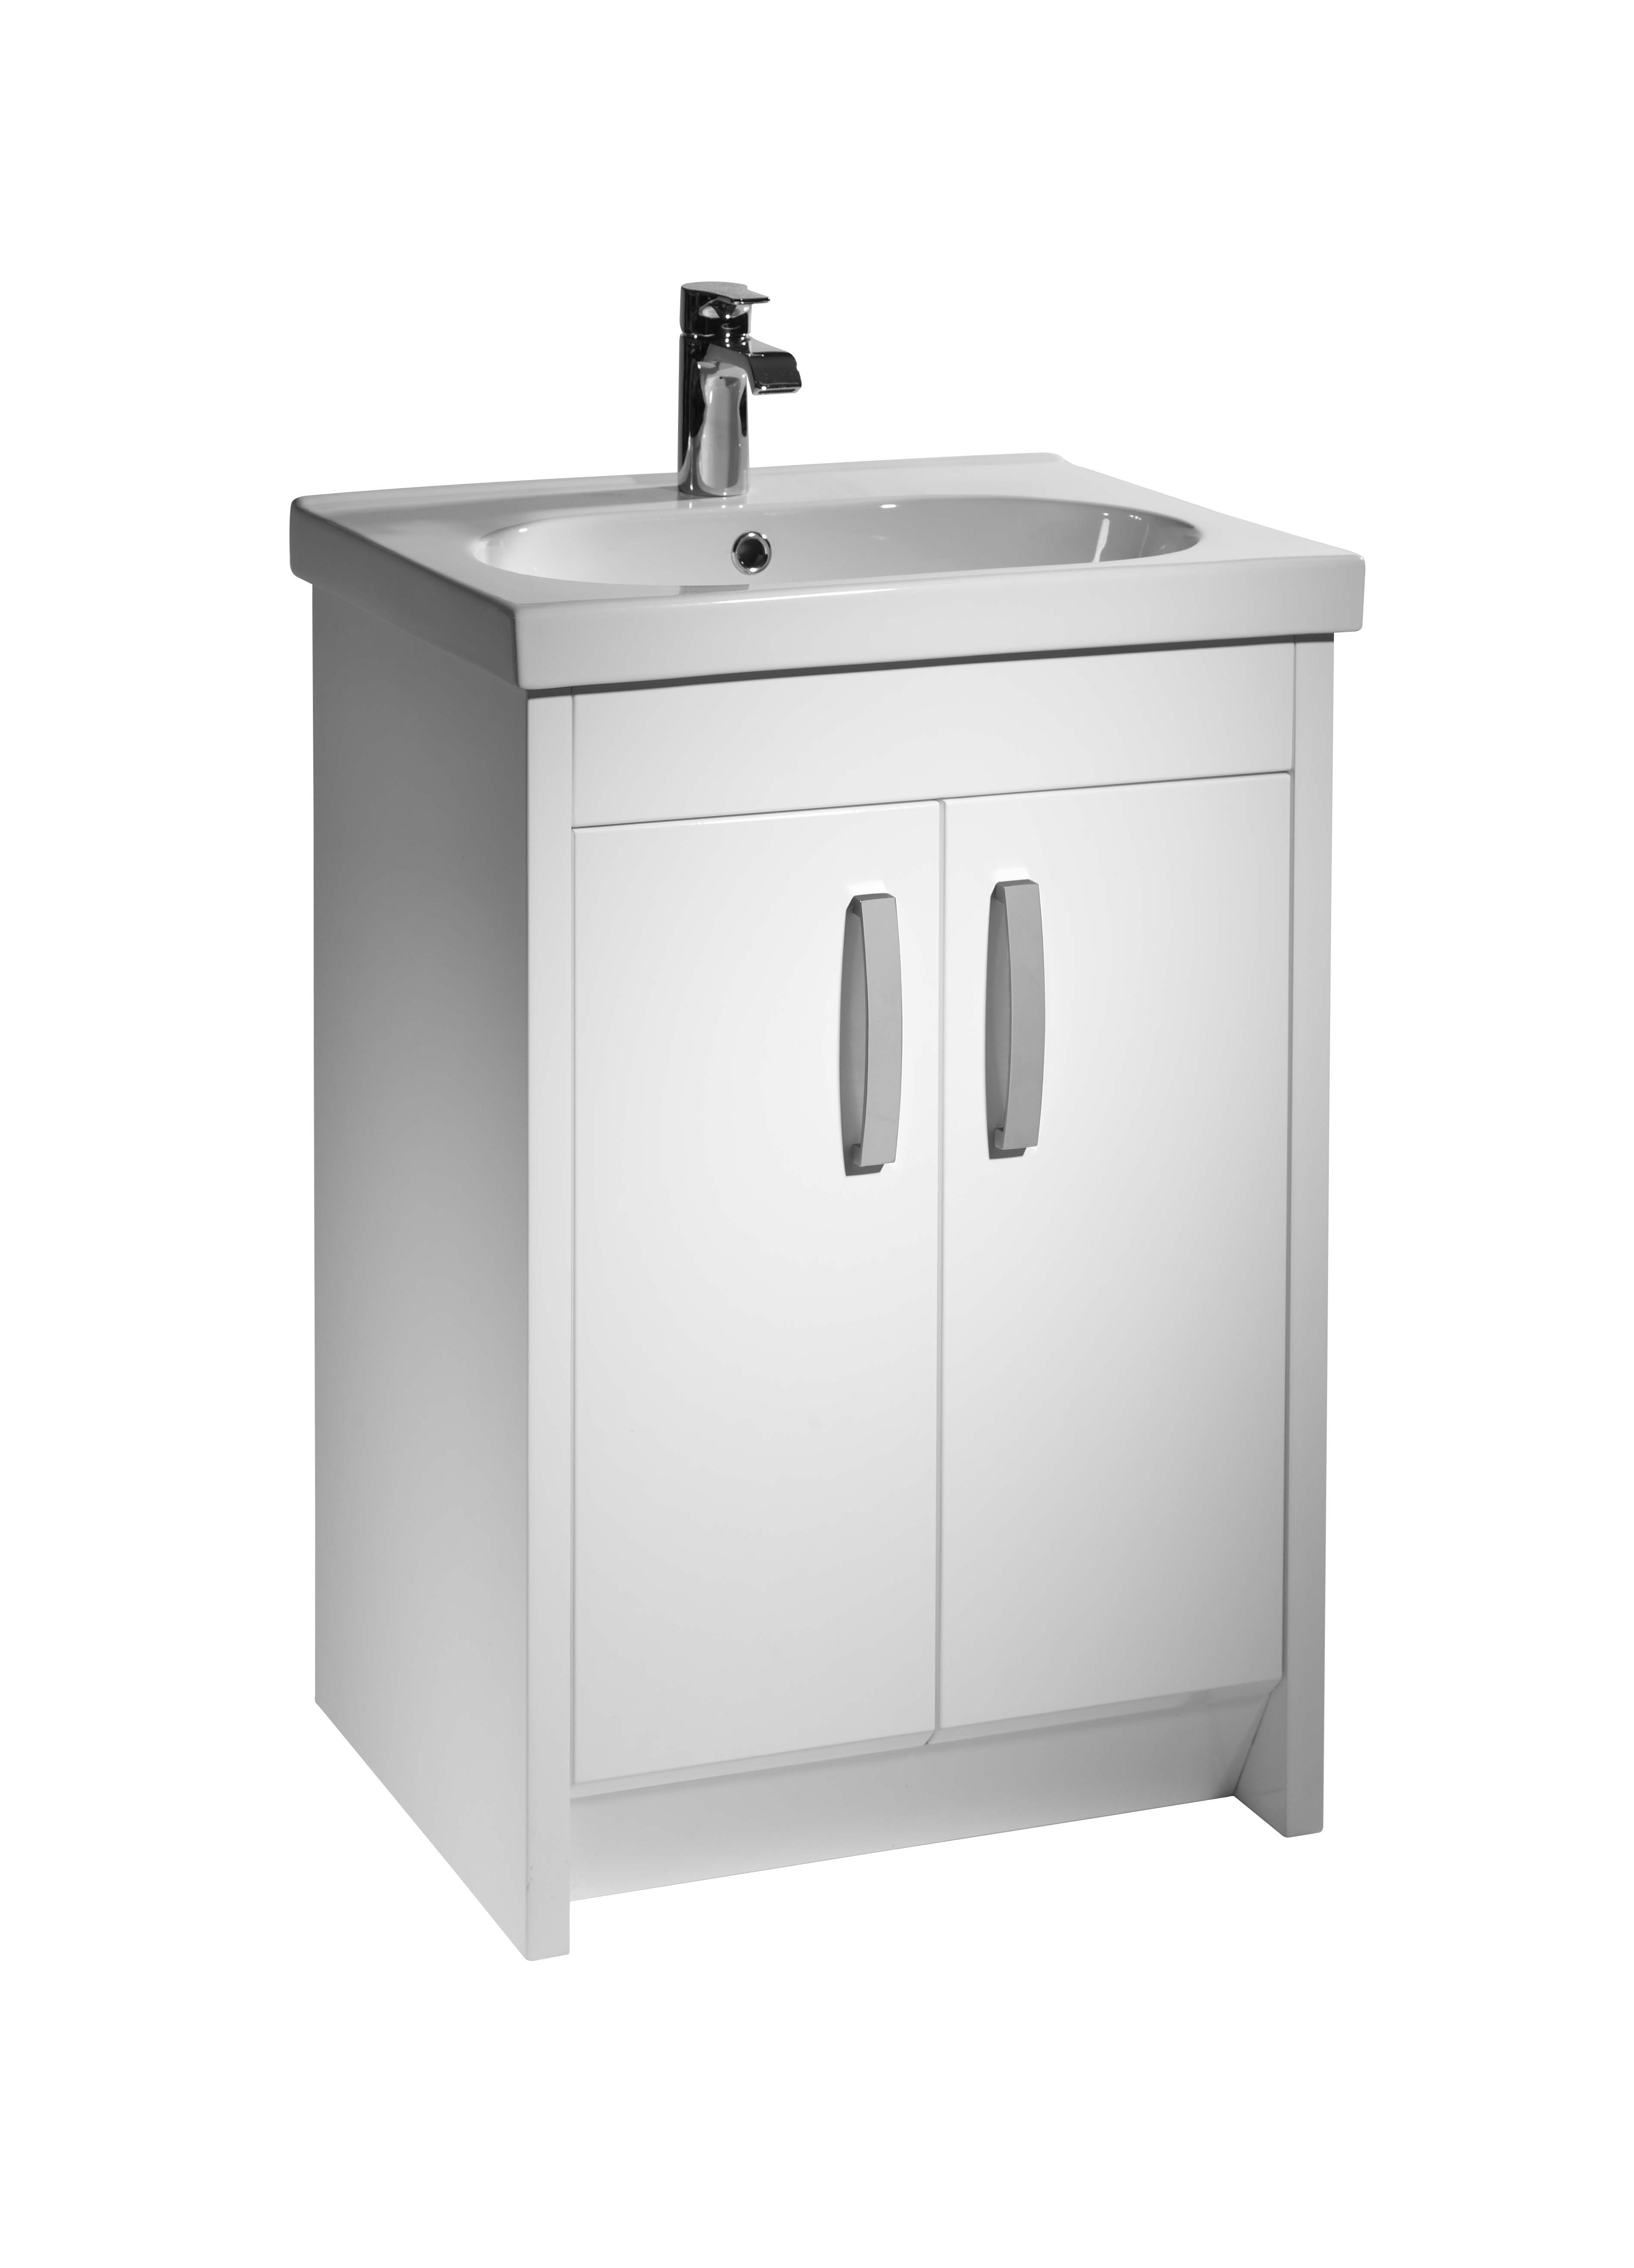 click on Floor Standing Vanity Unit image to enlarge